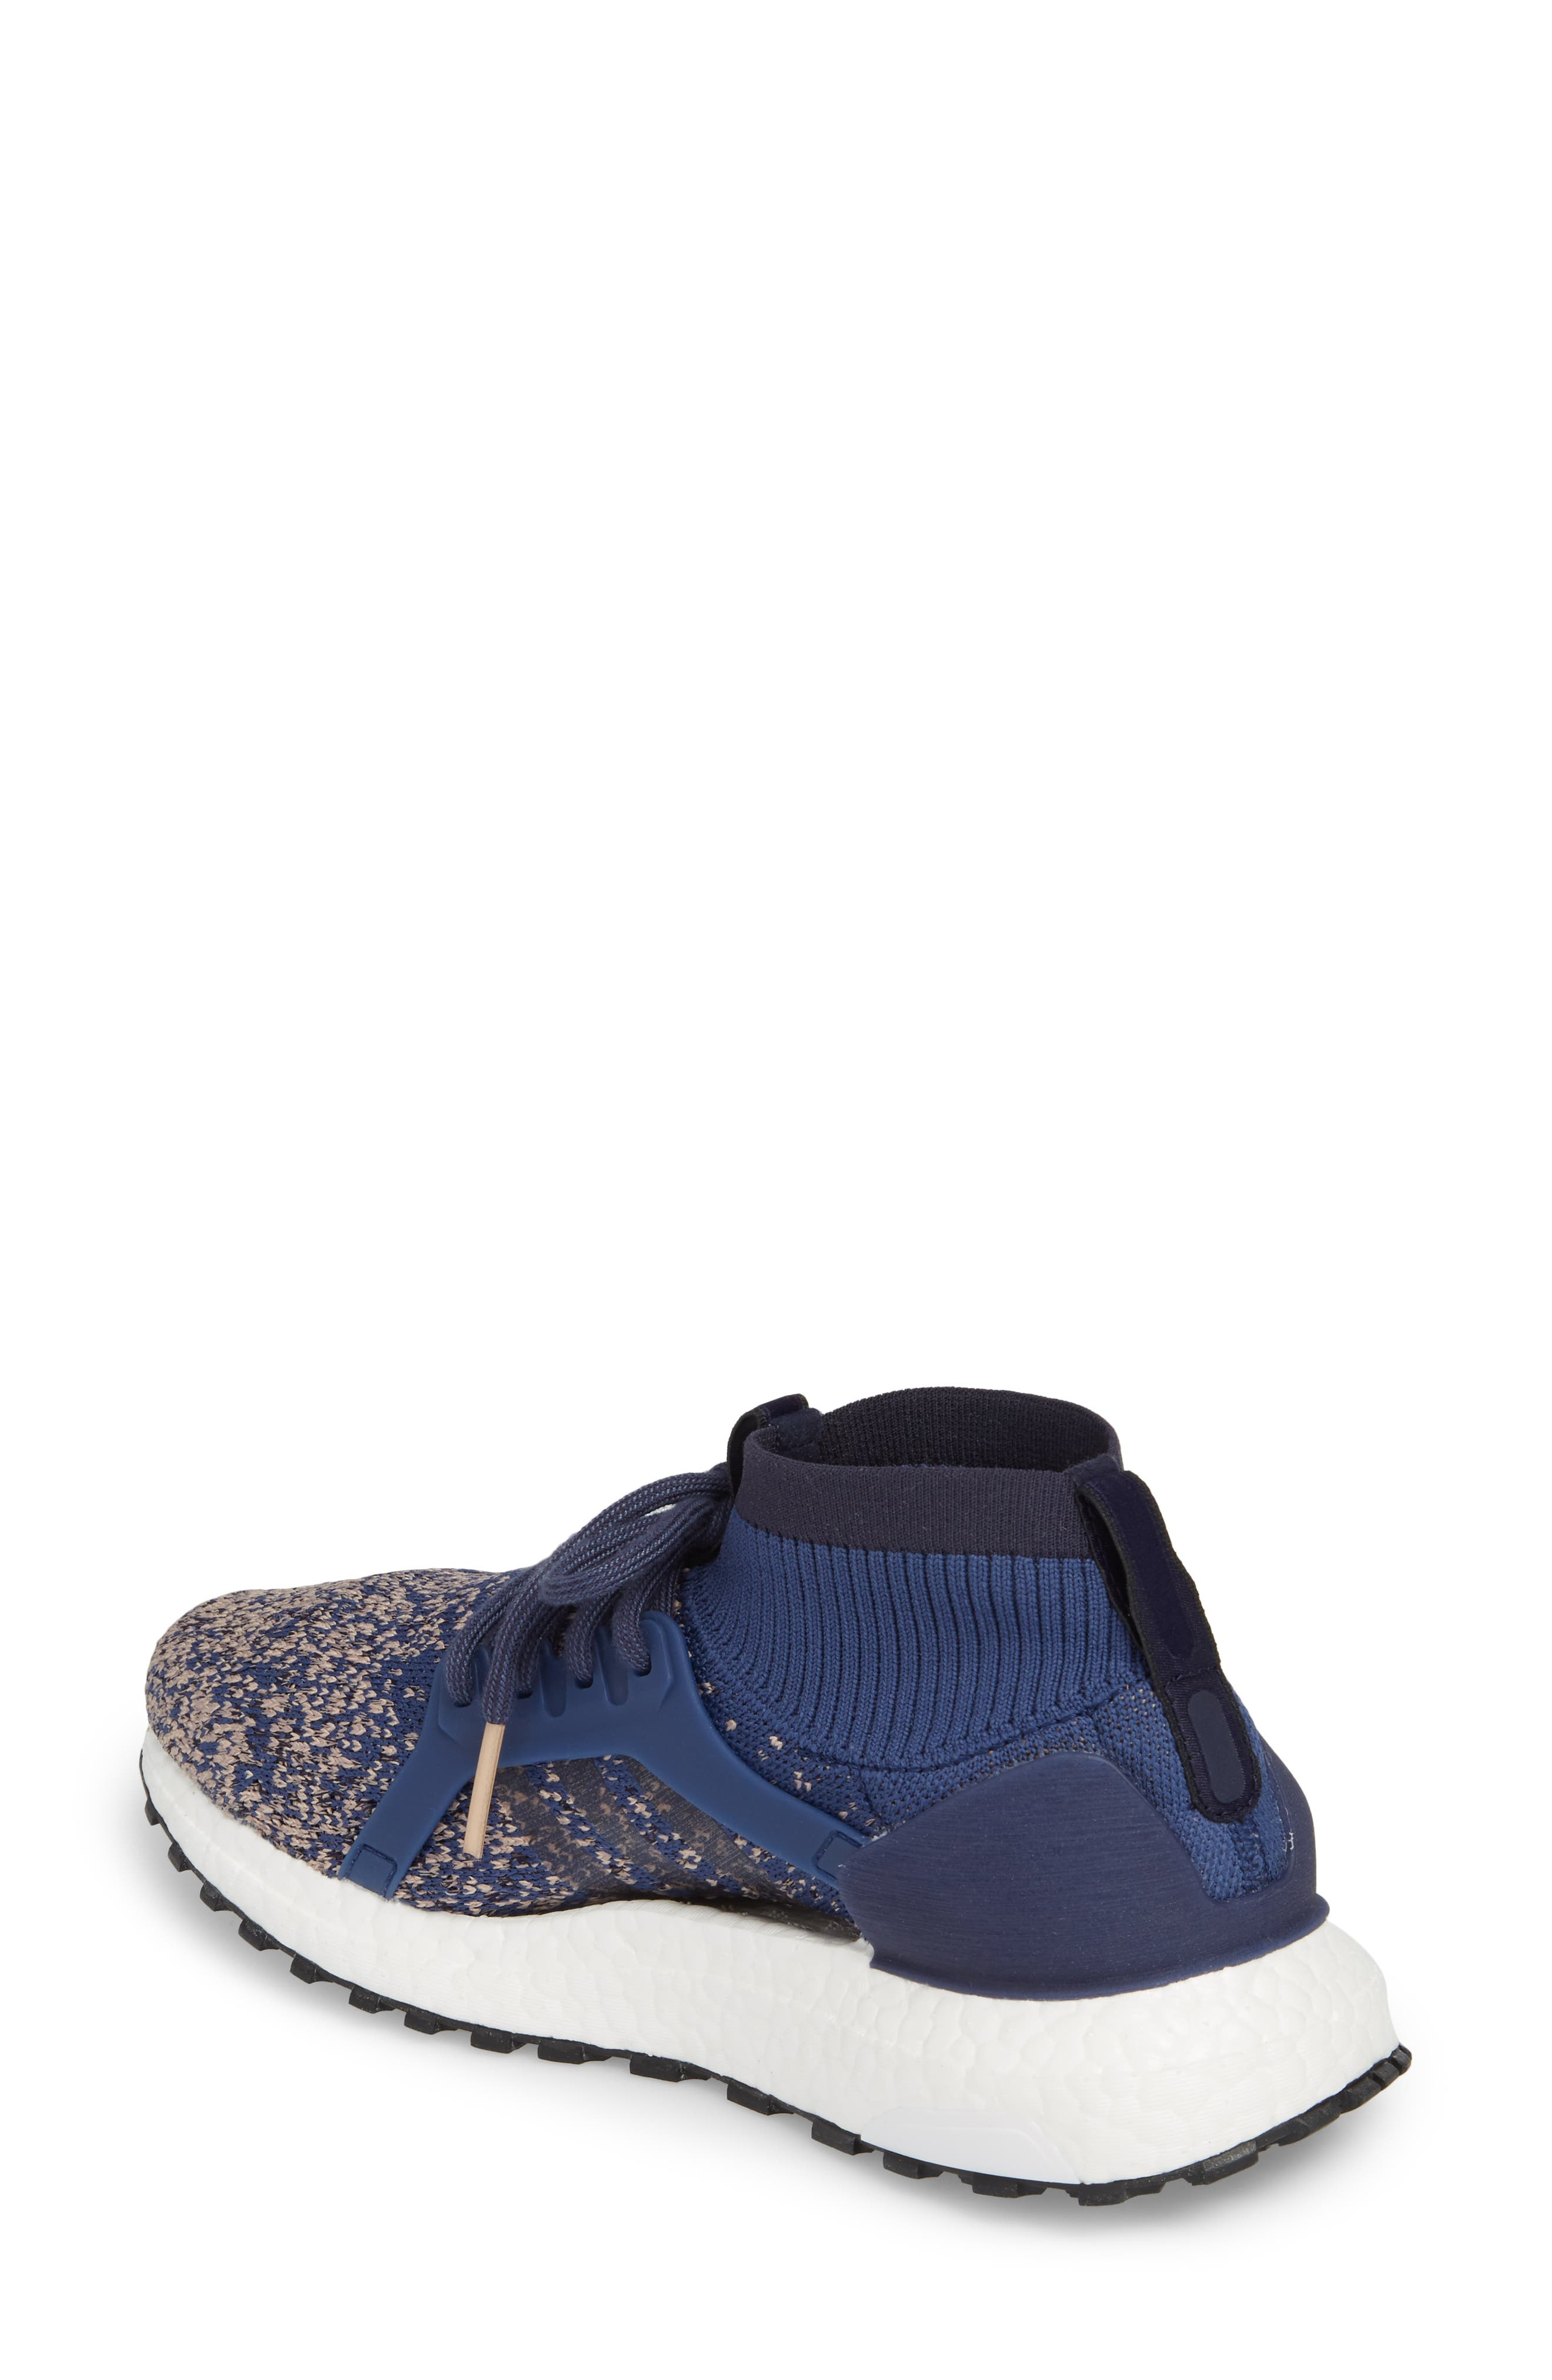 UltraBoost X All Terrain Water Resistant Running Shoe,                             Alternate thumbnail 2, color,                             Noble Indigo/ Noble Indigo